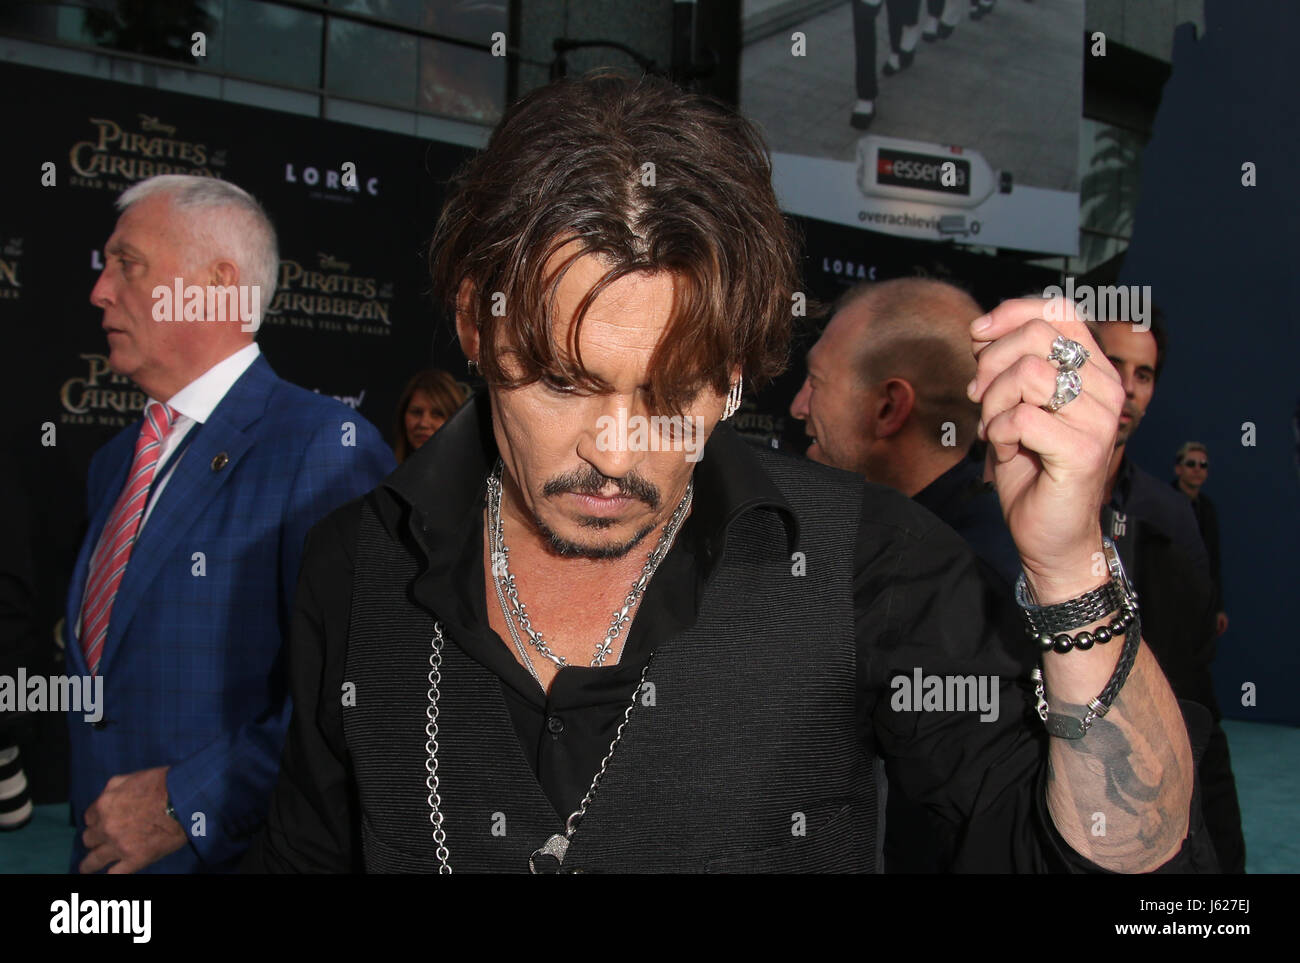 Hollywood, Ca. 18th May, 2017. Johnny Depp, At Premiere Of Disney's 'Pirates Of The Caribbean: Dead Men - Stock Image